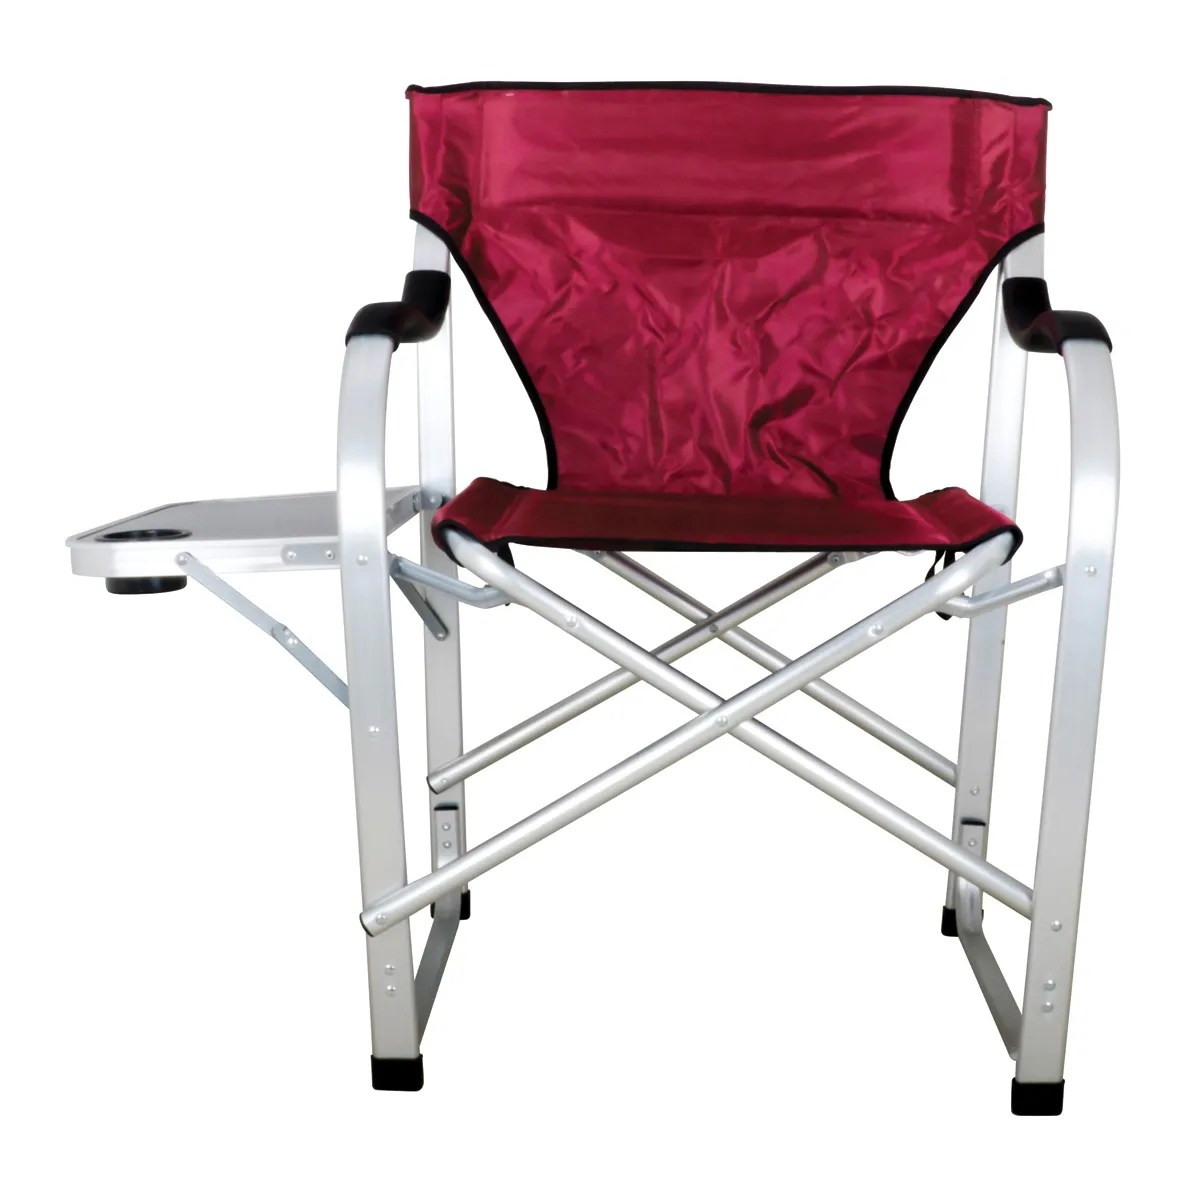 Foldable Lawn Chairs Heavy Duty Collapsible Lawn Chair Burgundy